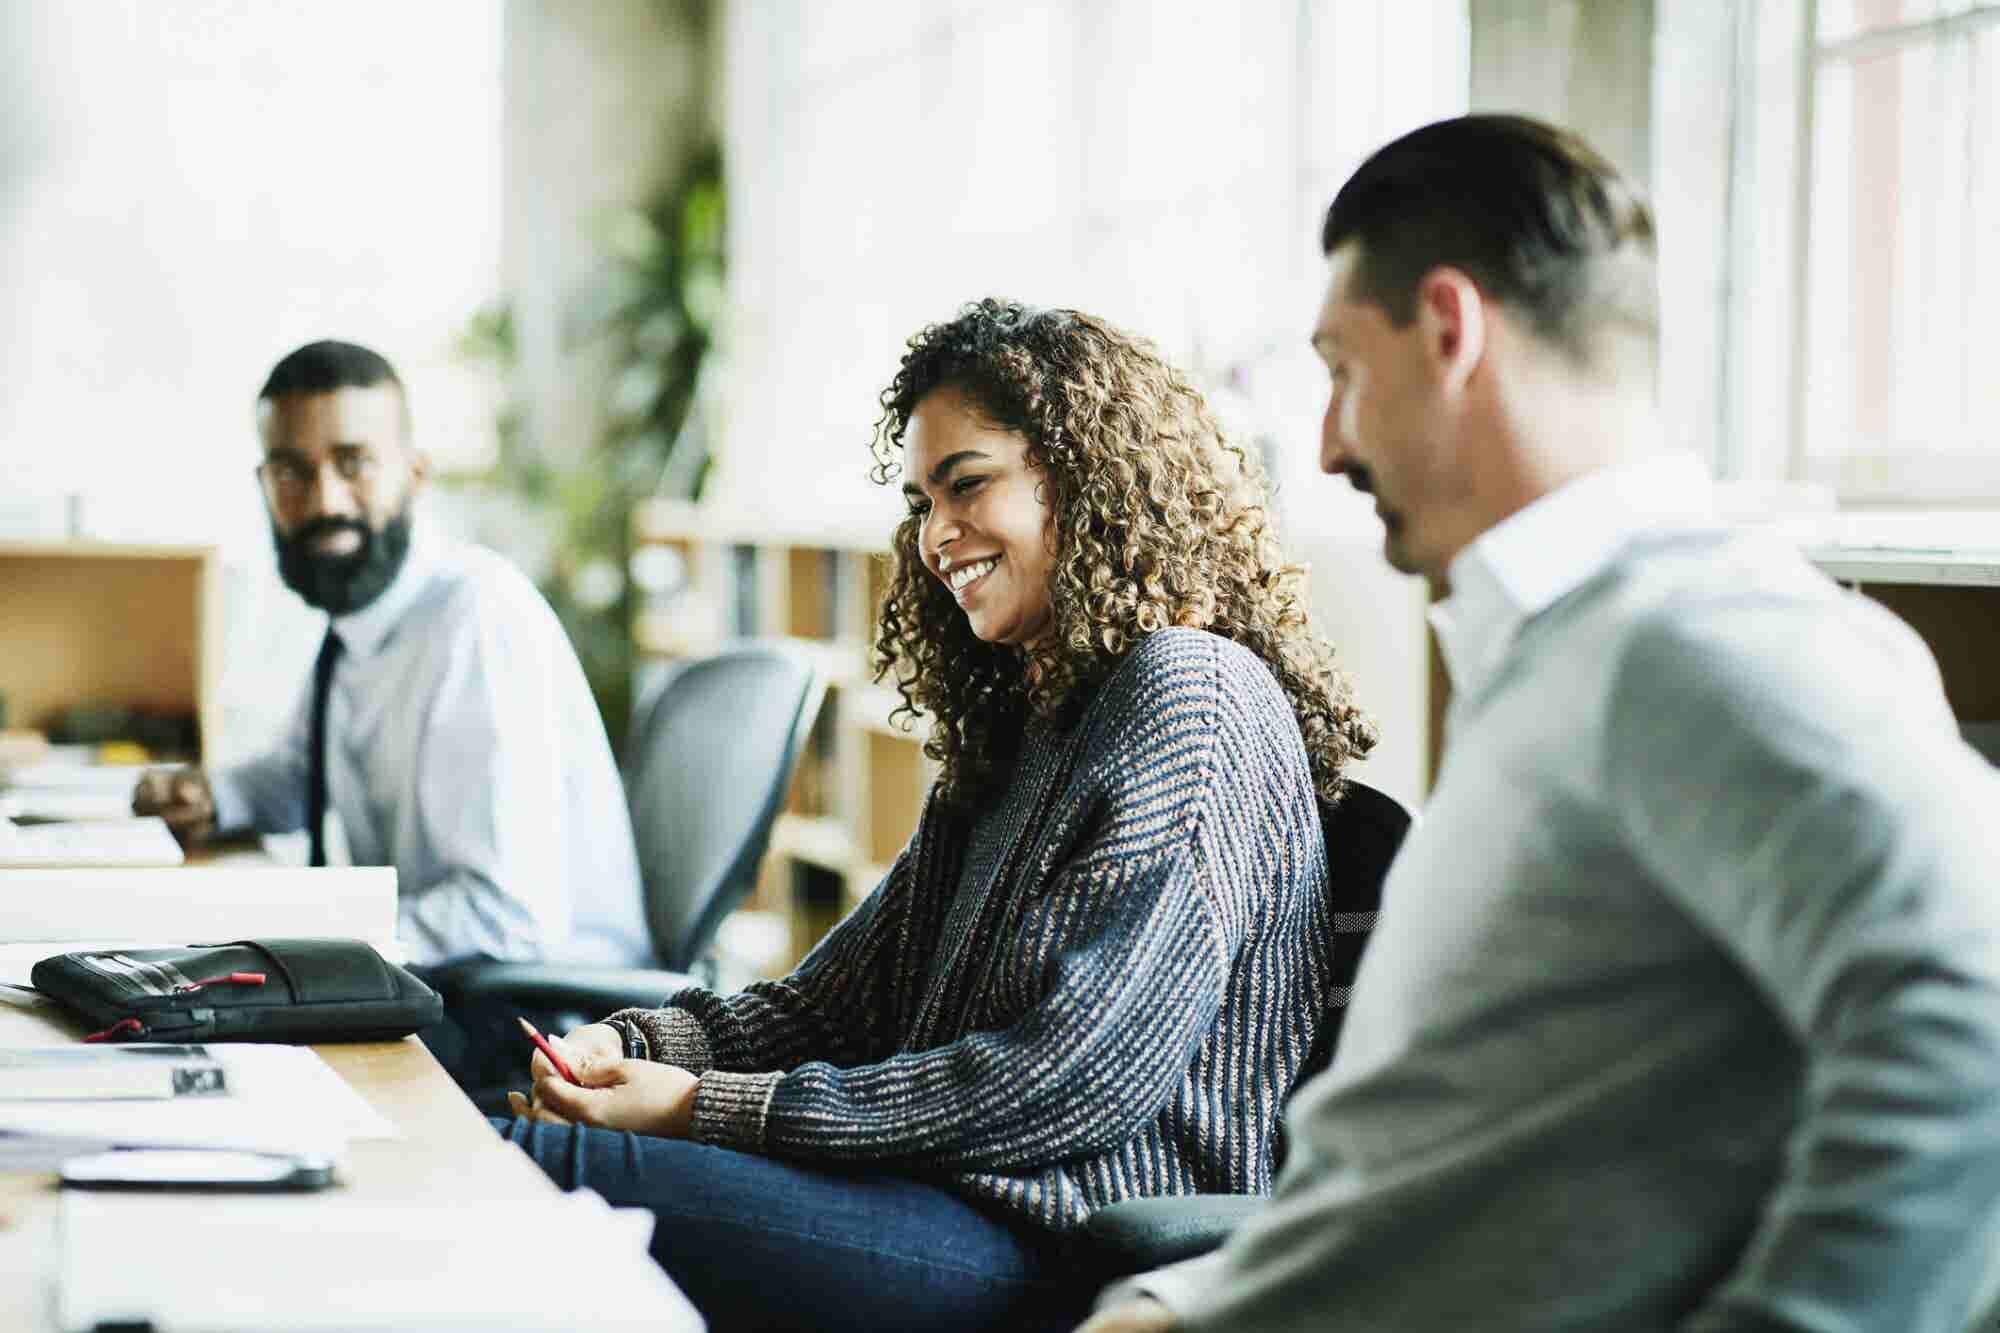 4 Tips to Help Workers From All Walks of Life Feel Welcome